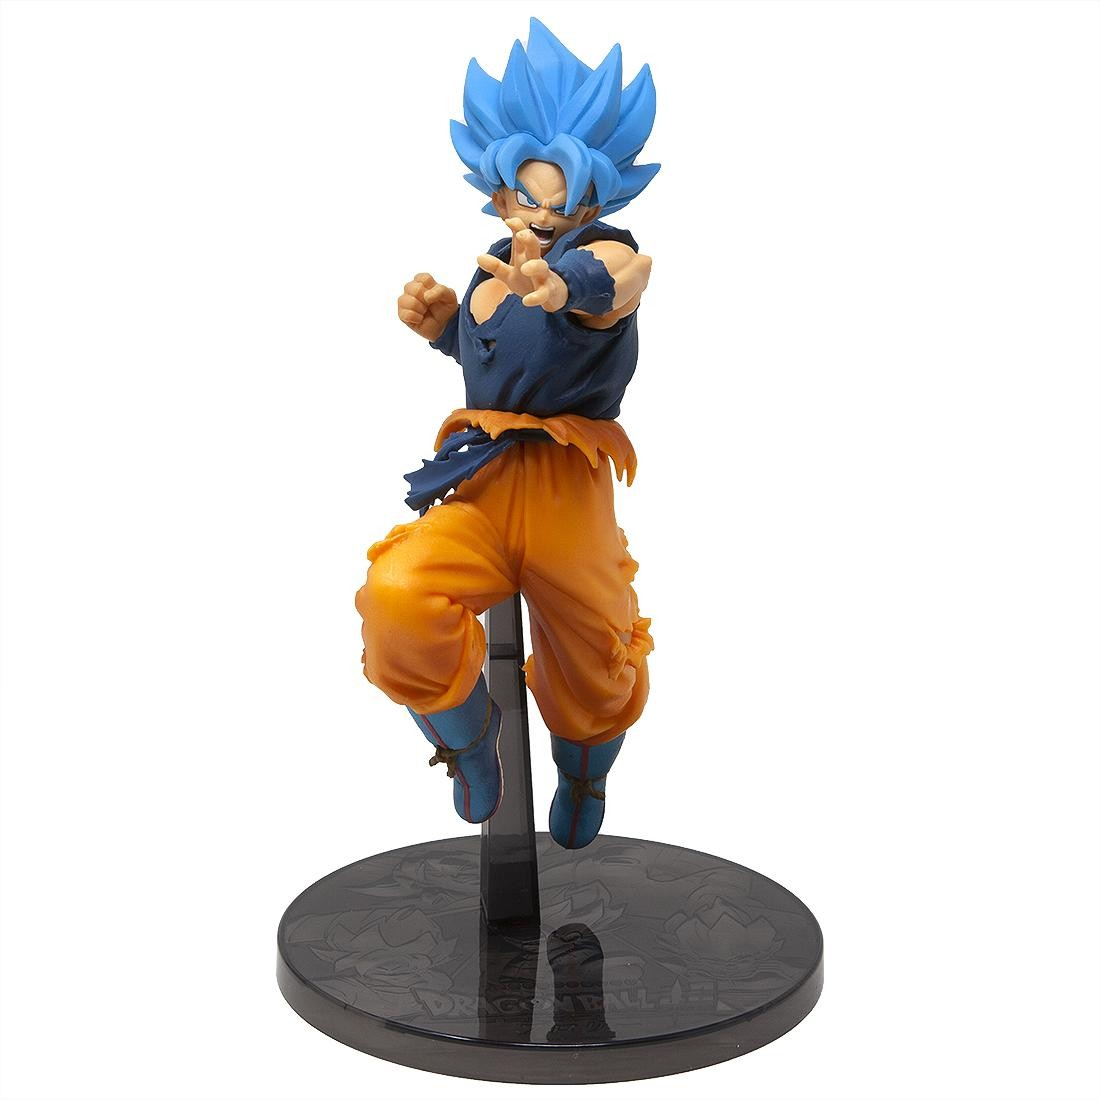 Banpresto Dragon Ball Super The Movie Ultimate Soldiers The Movie Vol 2 Super Saiyan Blue Goku Figure (blue)